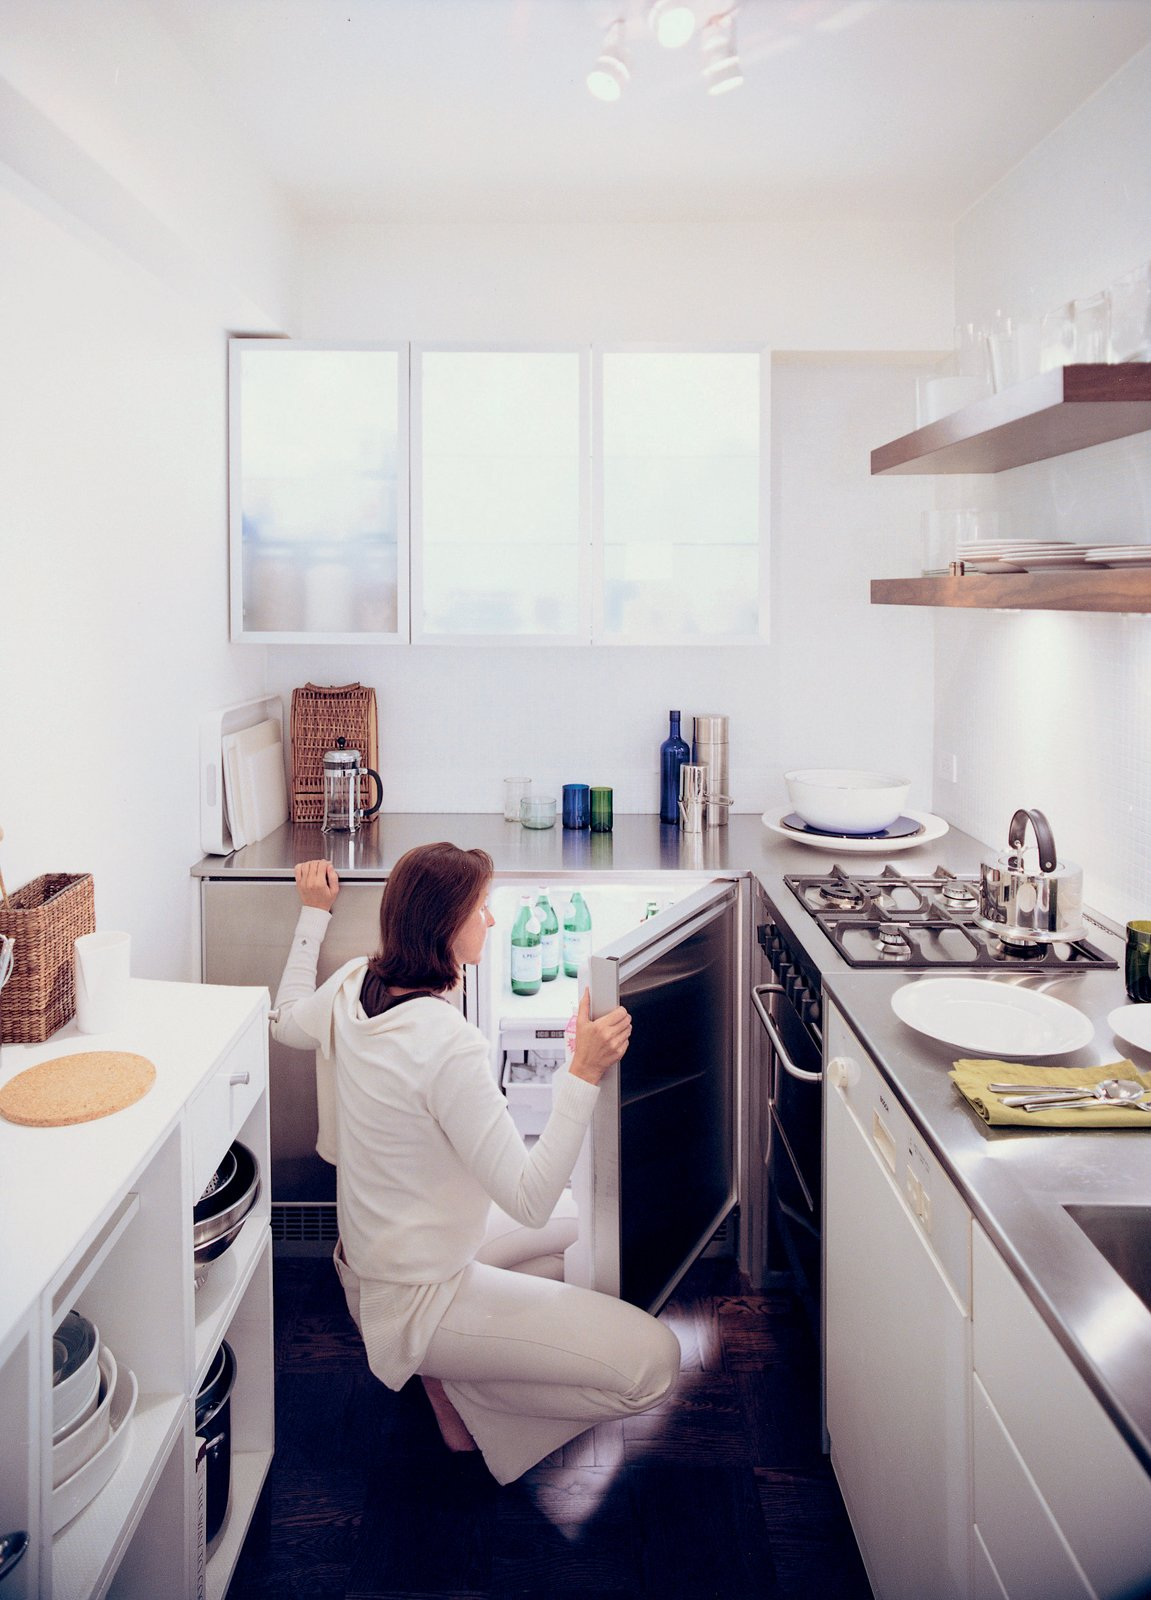 Goolrick reoriented the kitchen and chose sleek stainless steel countertops and bright white walls and cupboards to create the illusion of space.  Solutions For Tiny Kitchens by Aileen Kwun from Urban Vessel